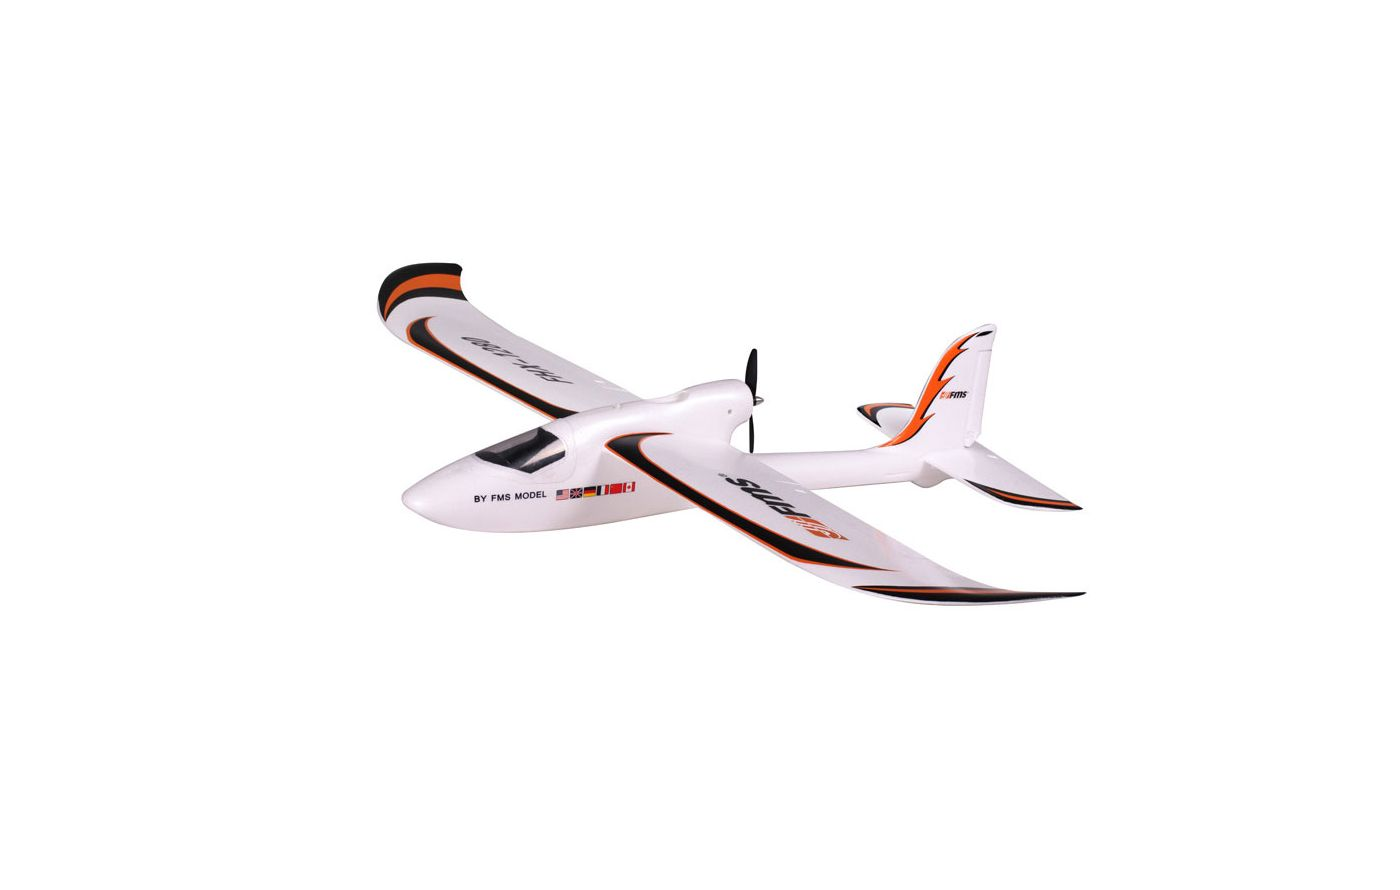 Image for Easy Trainer 1280 RTF, 1280mm from Force RC